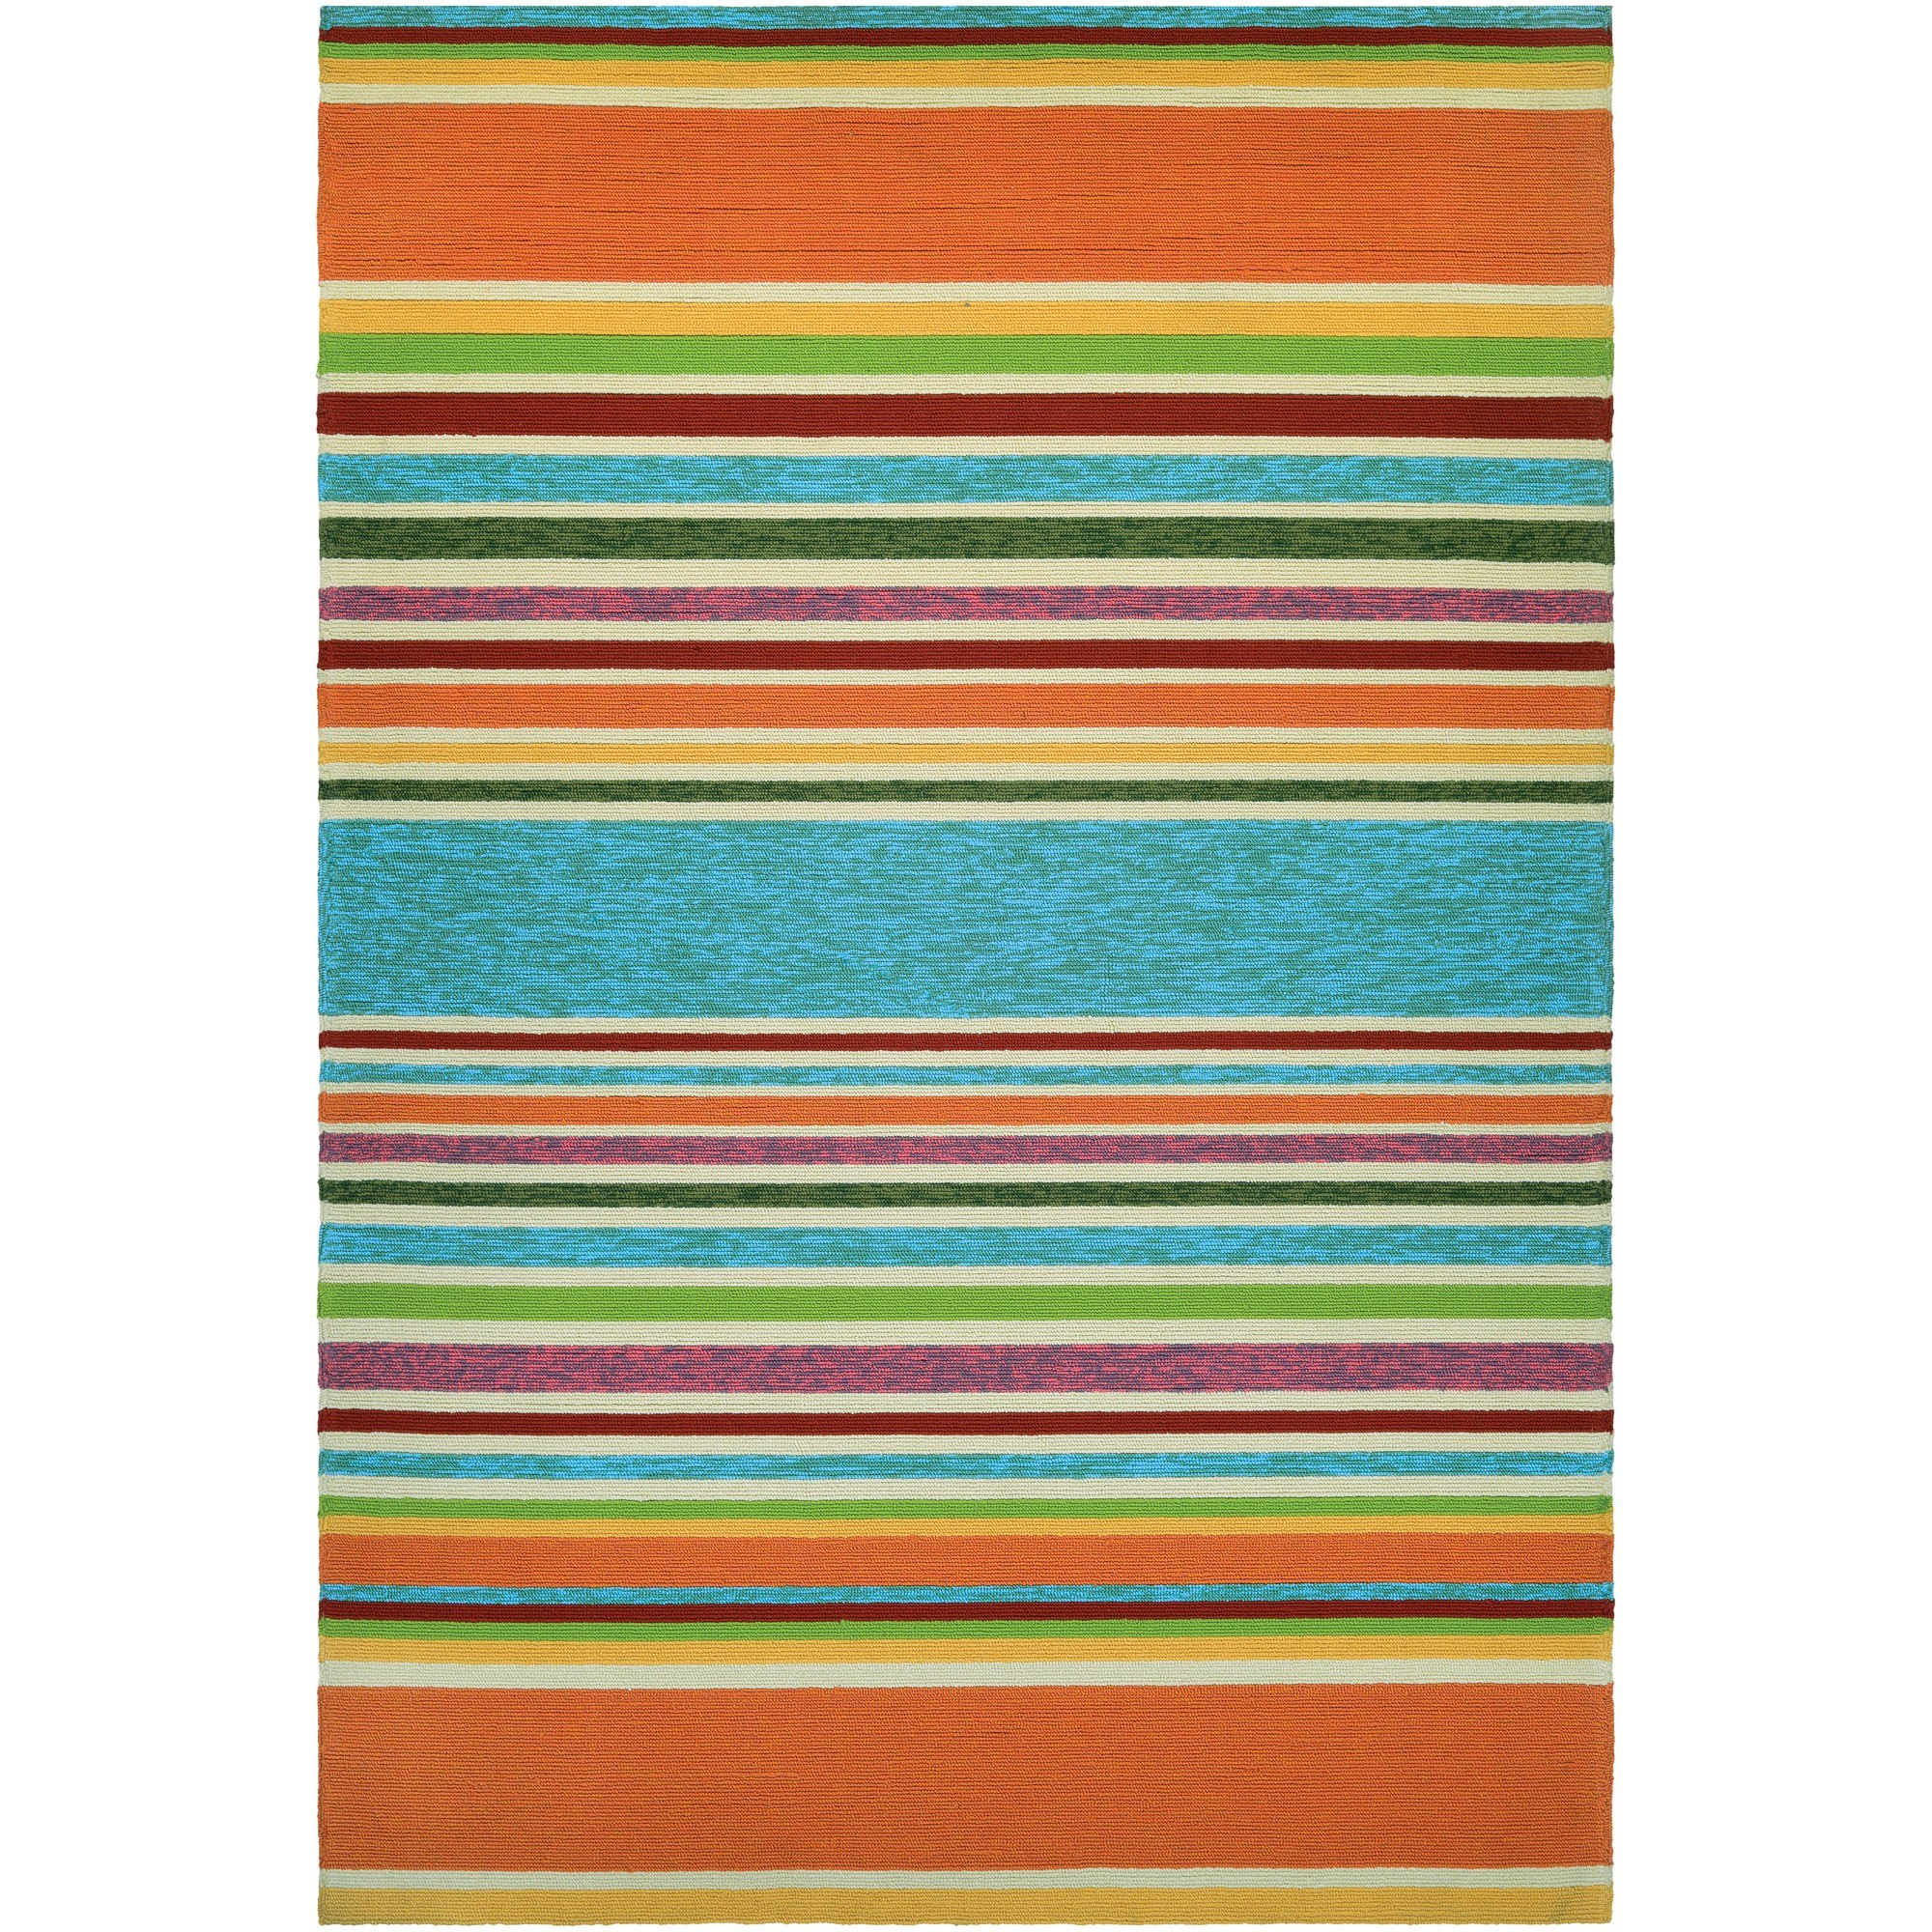 Exceptional Covington Sherbet Stripe Multi Color Outdoor Rug